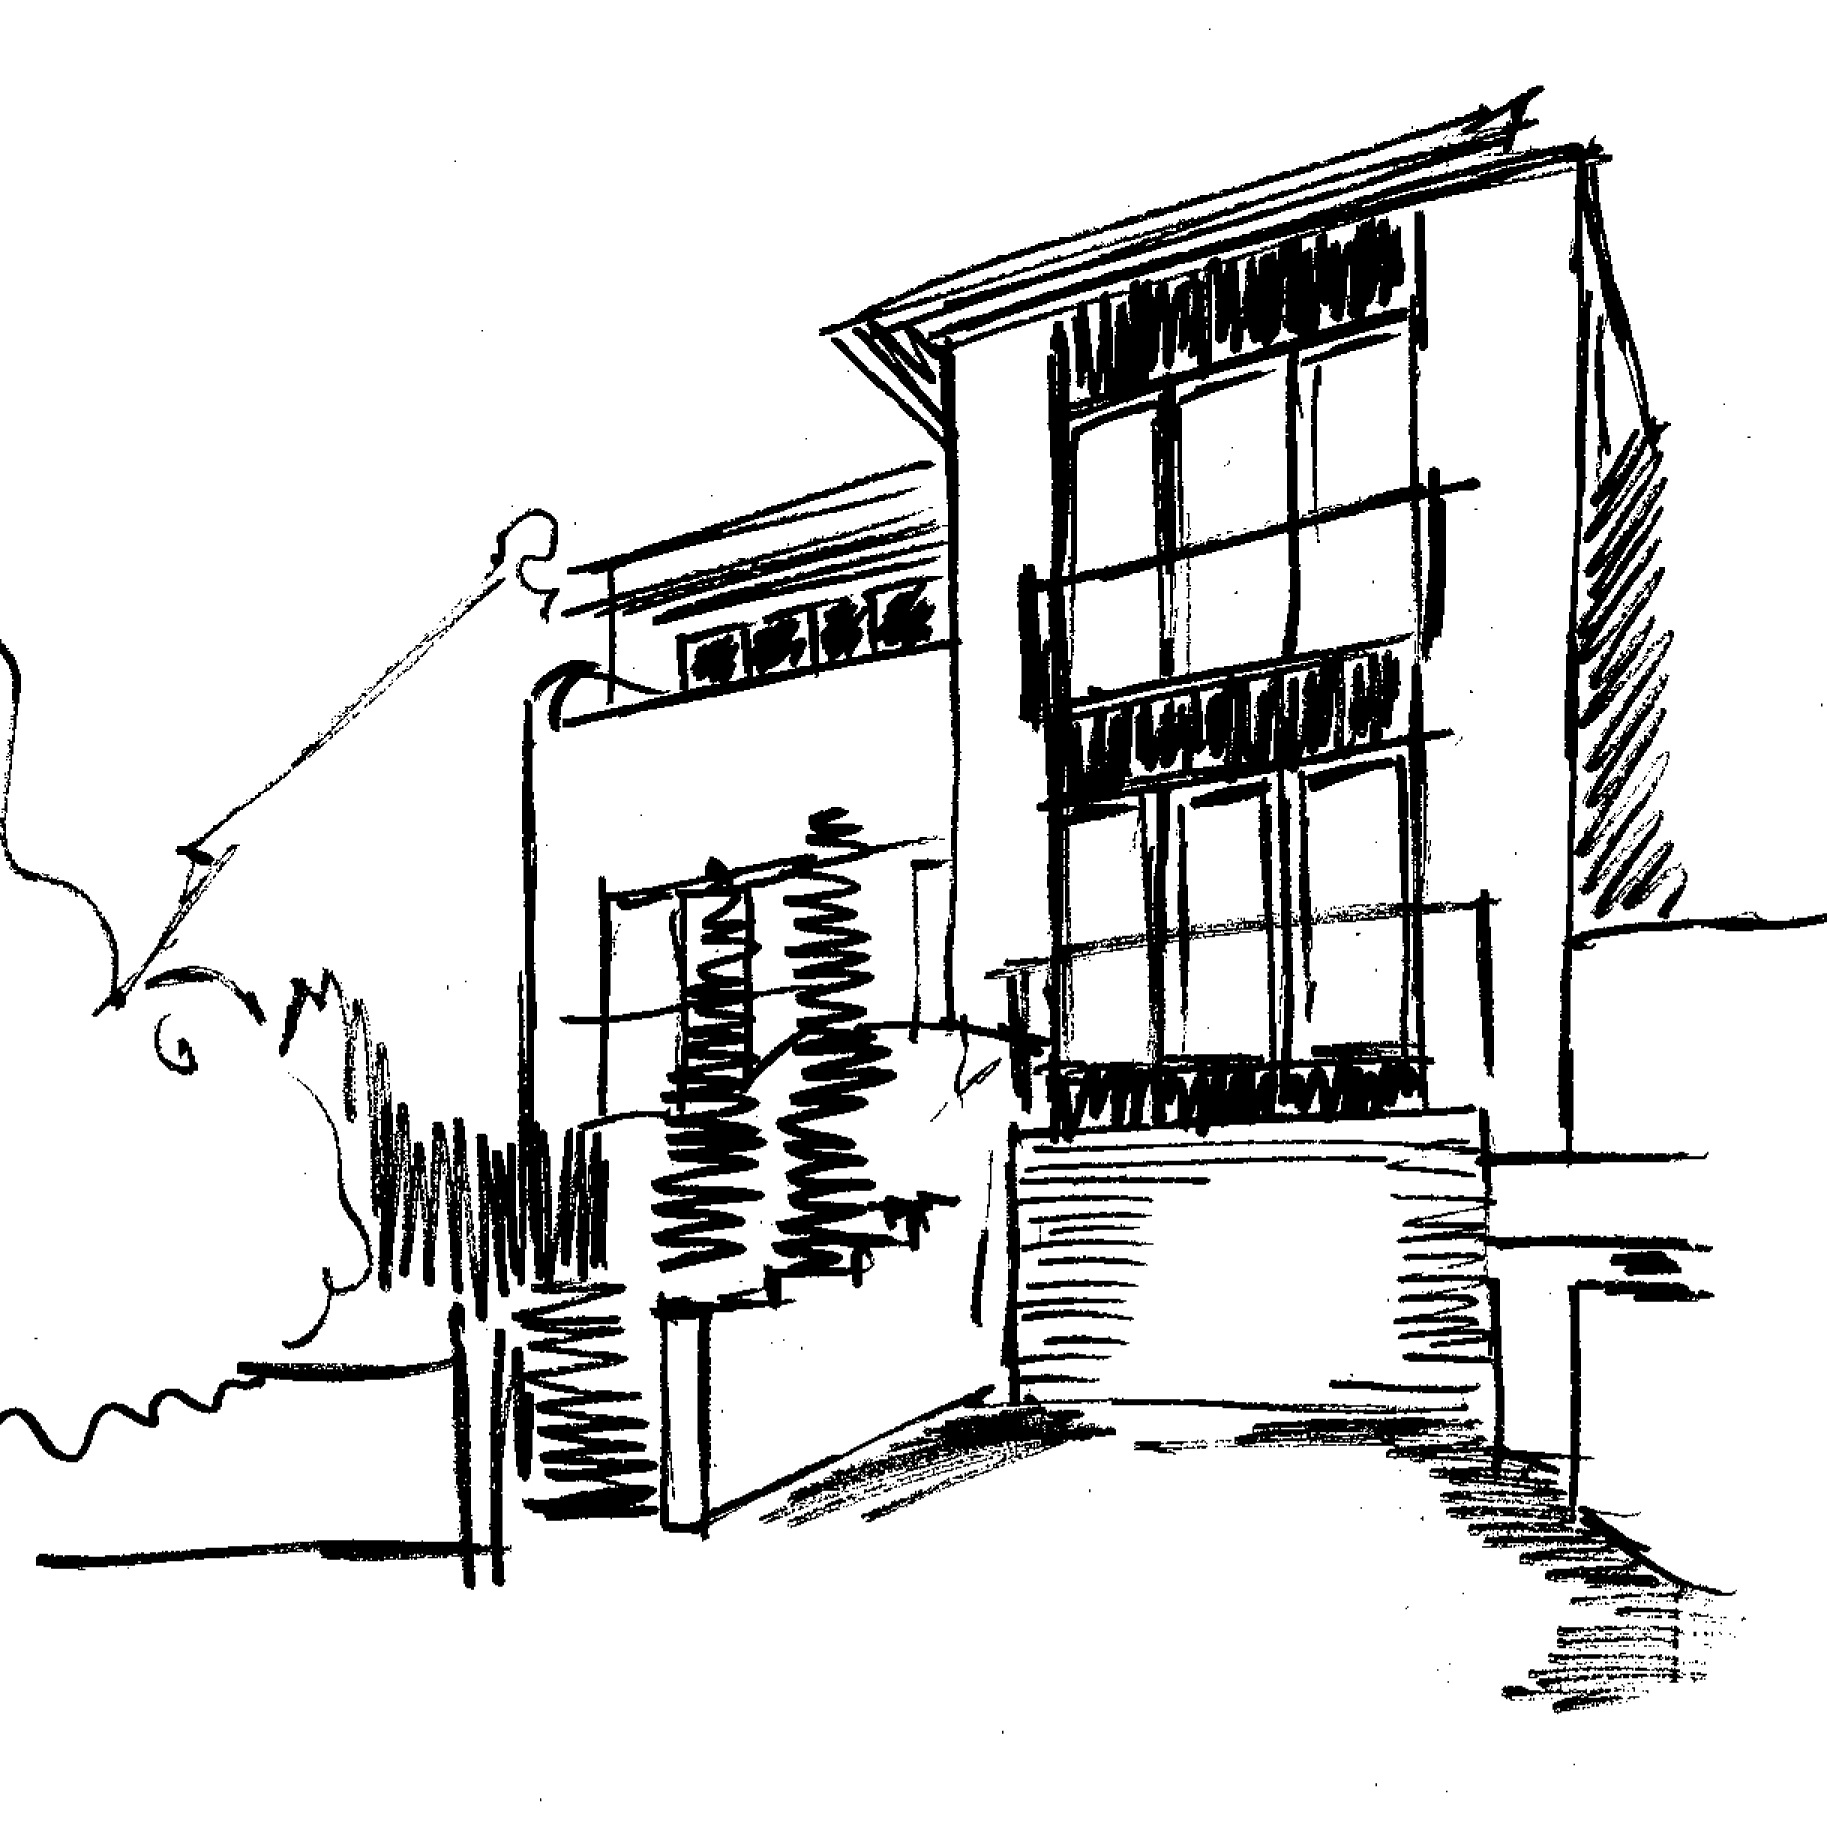 dispelling myths about architects feature image transforming a bungalow sketch